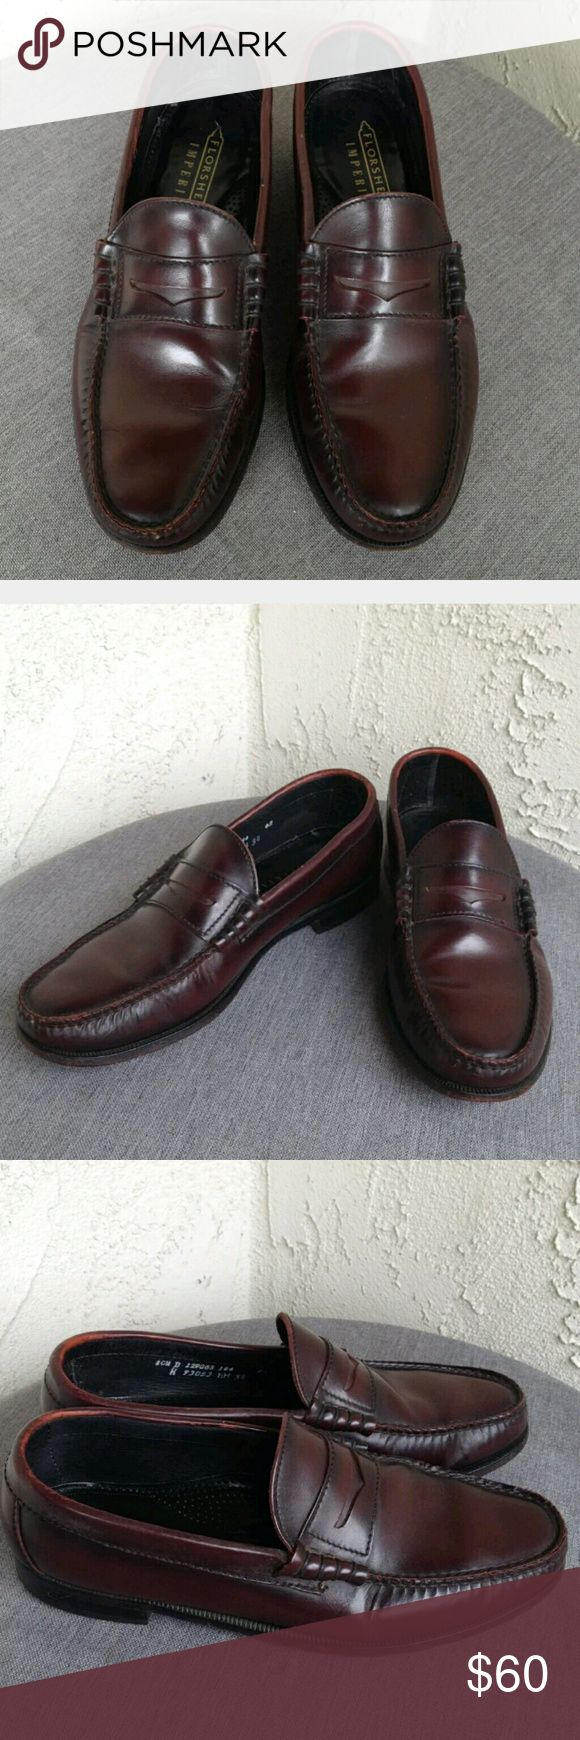 Florsheim Imperial Cordovan Dress Loafers 10.5 Florsheim Dress Shoes Mens Imperial Cordovan Leather Slip On Career Loafers 10.5 - Great preowned condition, minimal signs of wear....Enjoy!  Type: Shoes Style: Leather Dress Loafers Brand: Florsheim Size: 10.5 D / Medium Material: Leather Color: Cordovan Condition: Great Preowned Condition, minimal signs of wear  Country of Manufacturer: USA Stock Number: 0008 Florsheim Shoes Loafers & Slip-Ons